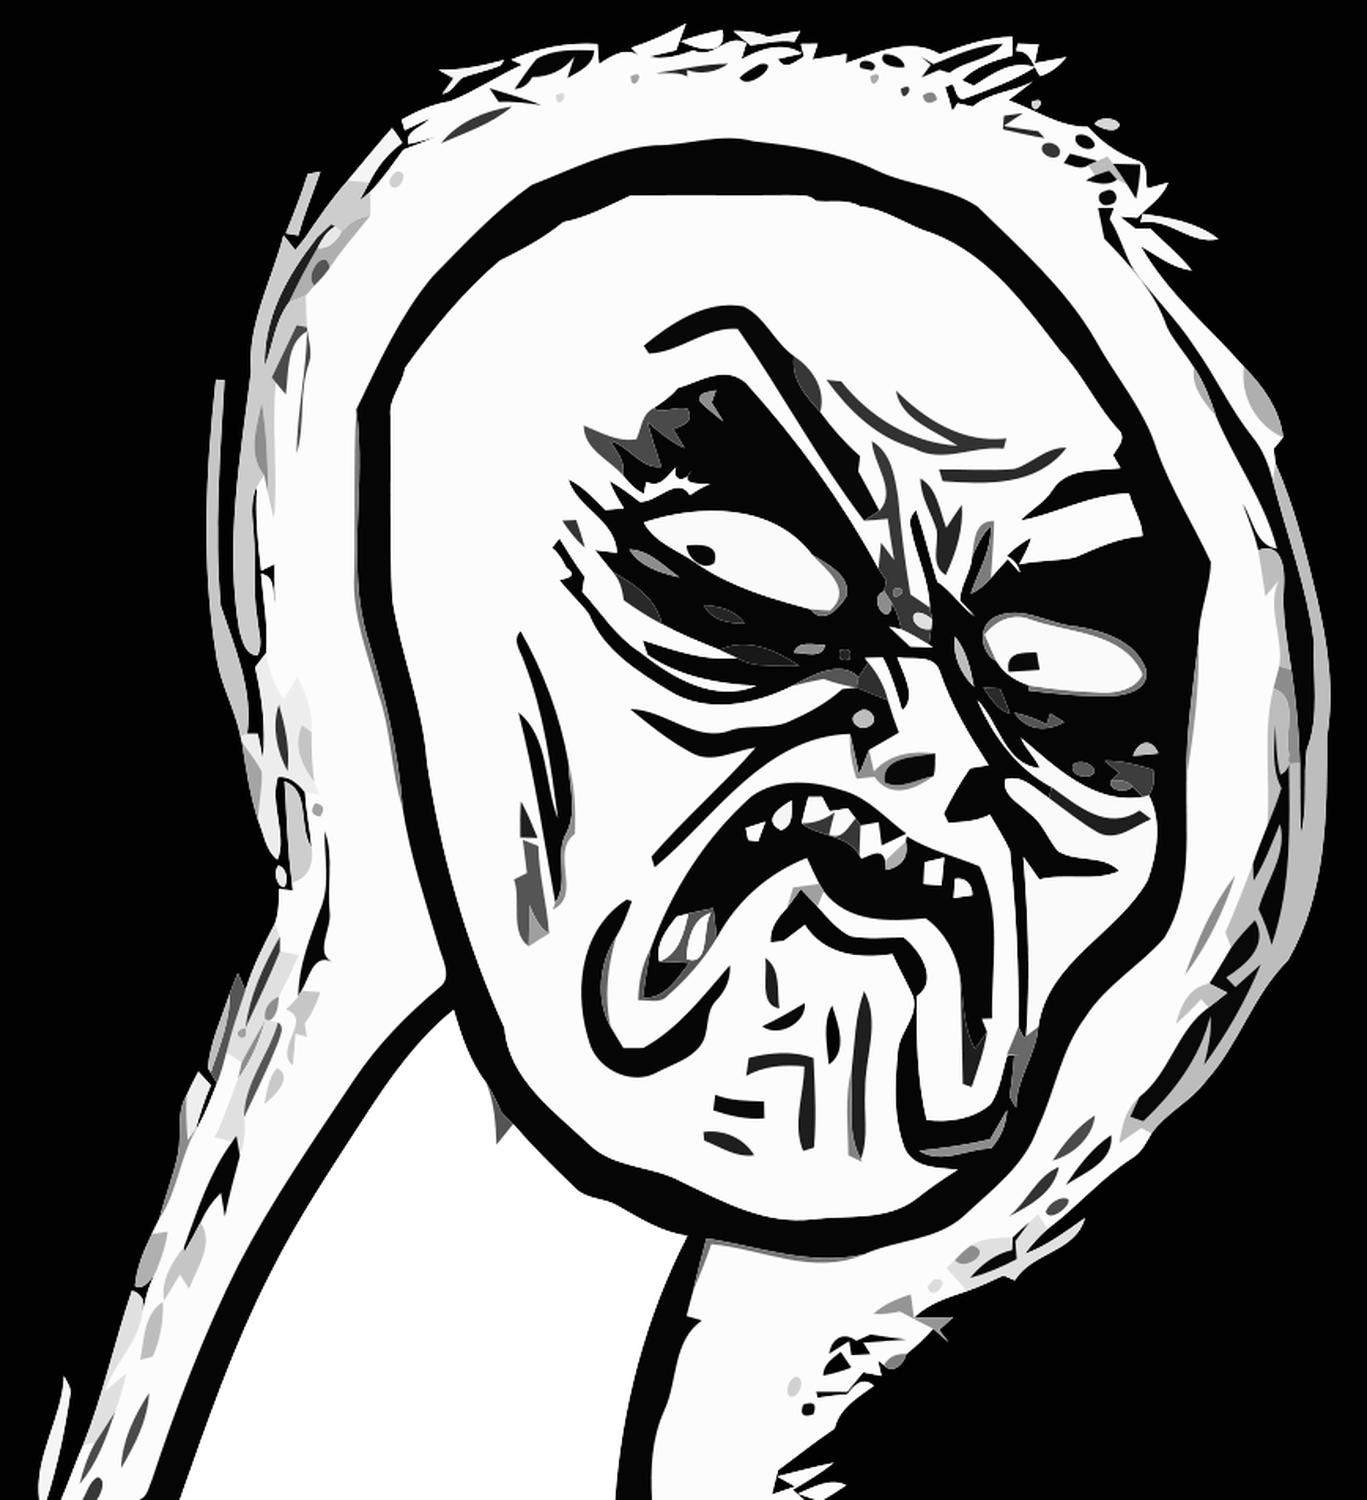 angry contempt Rage meme, Rage faces, Angry face meme